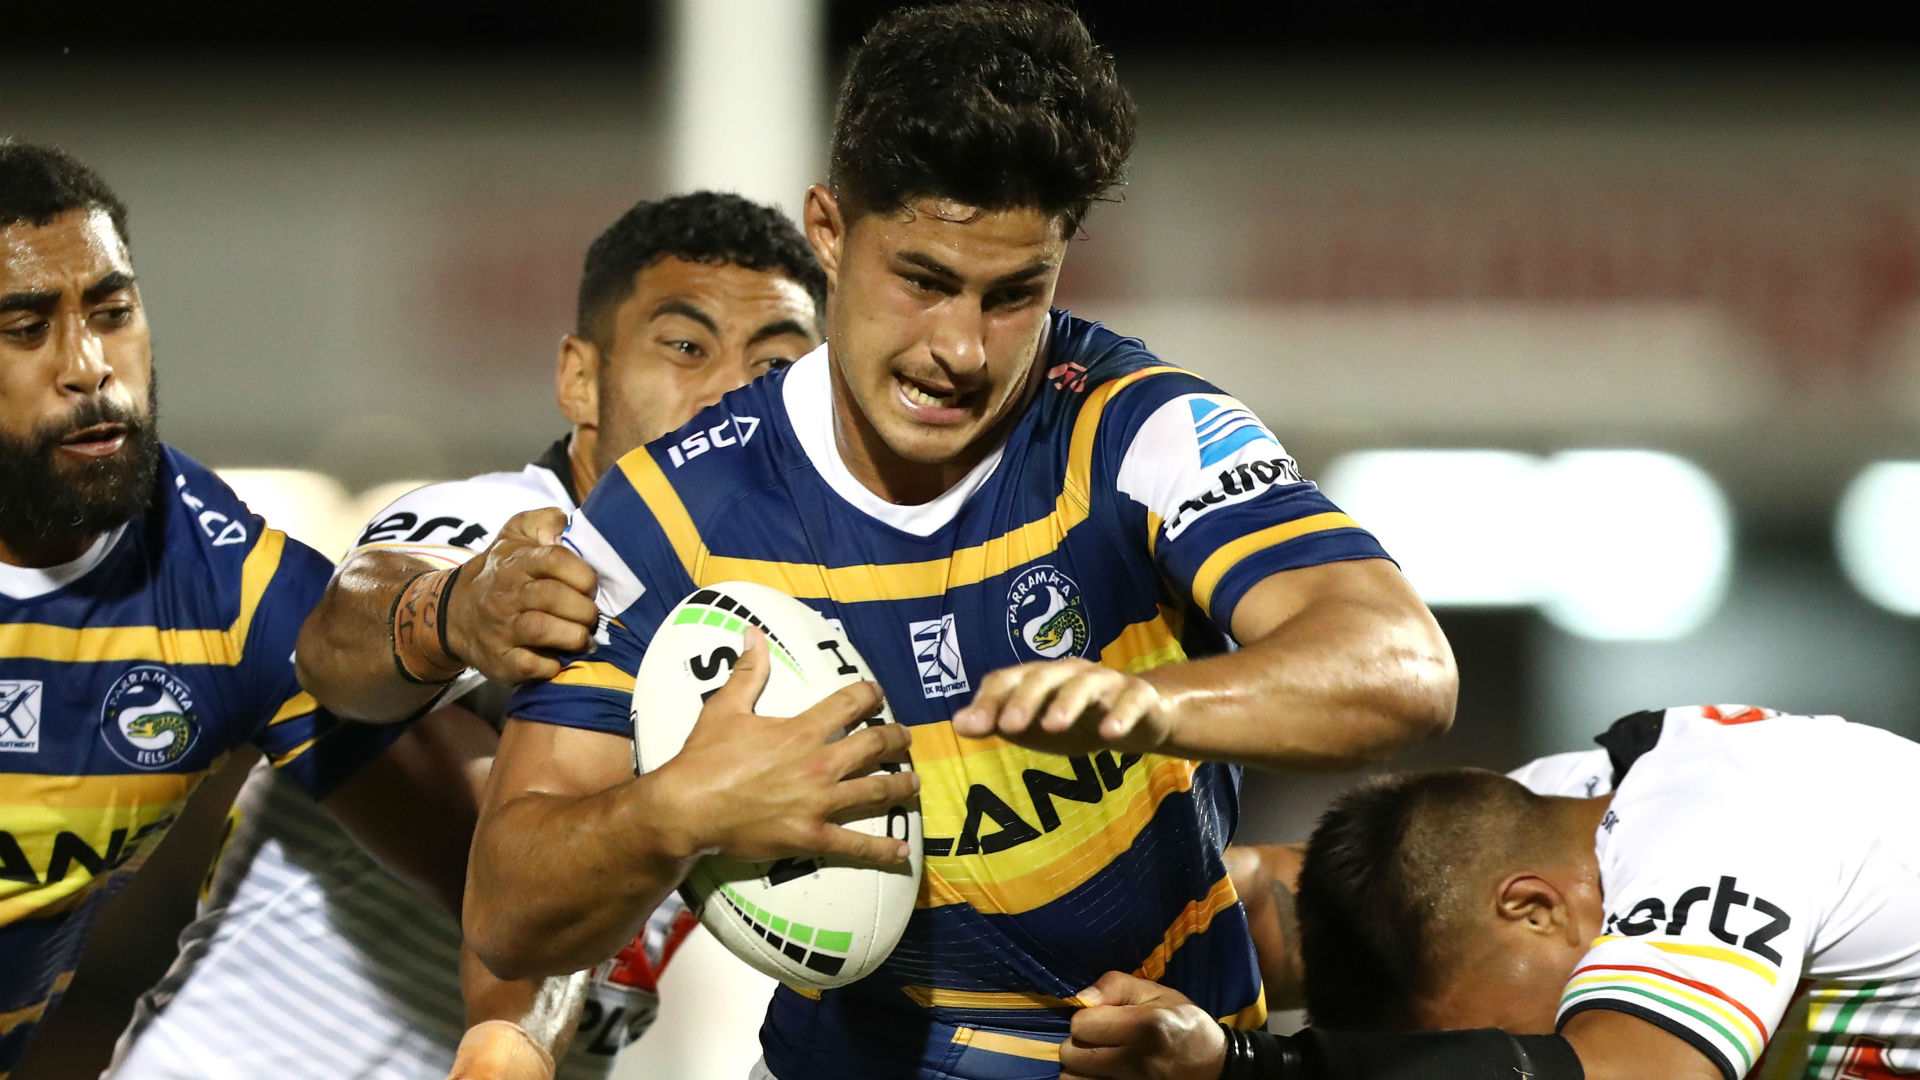 Andrew Johns and Brad Fittler in awe of Eels debutant Dylan Brown